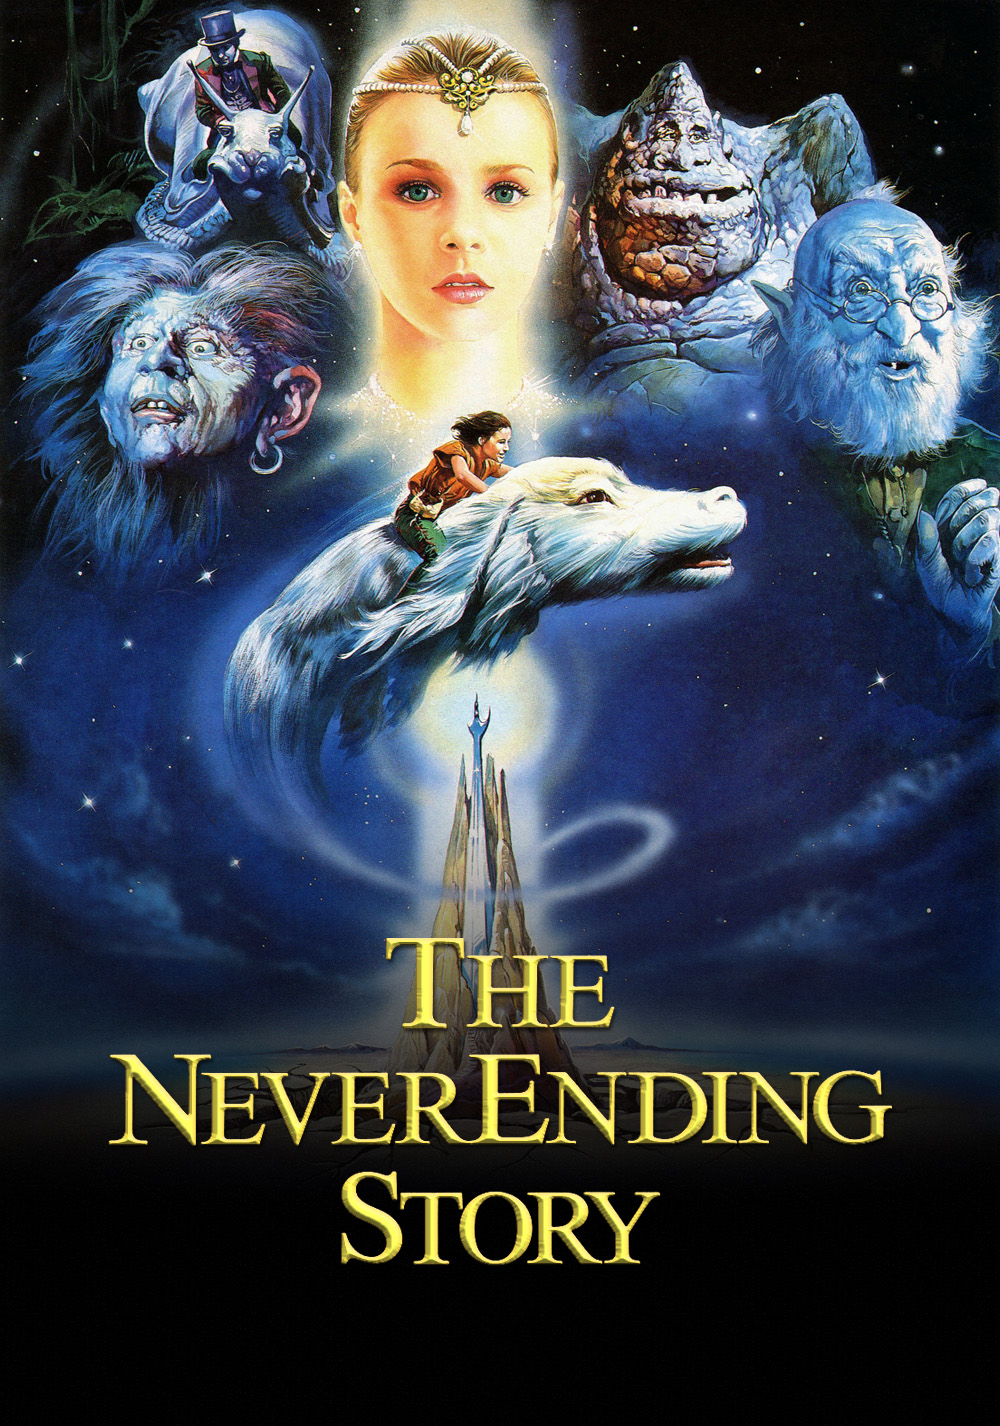 the-neverending-story-58e353187676a.jpg